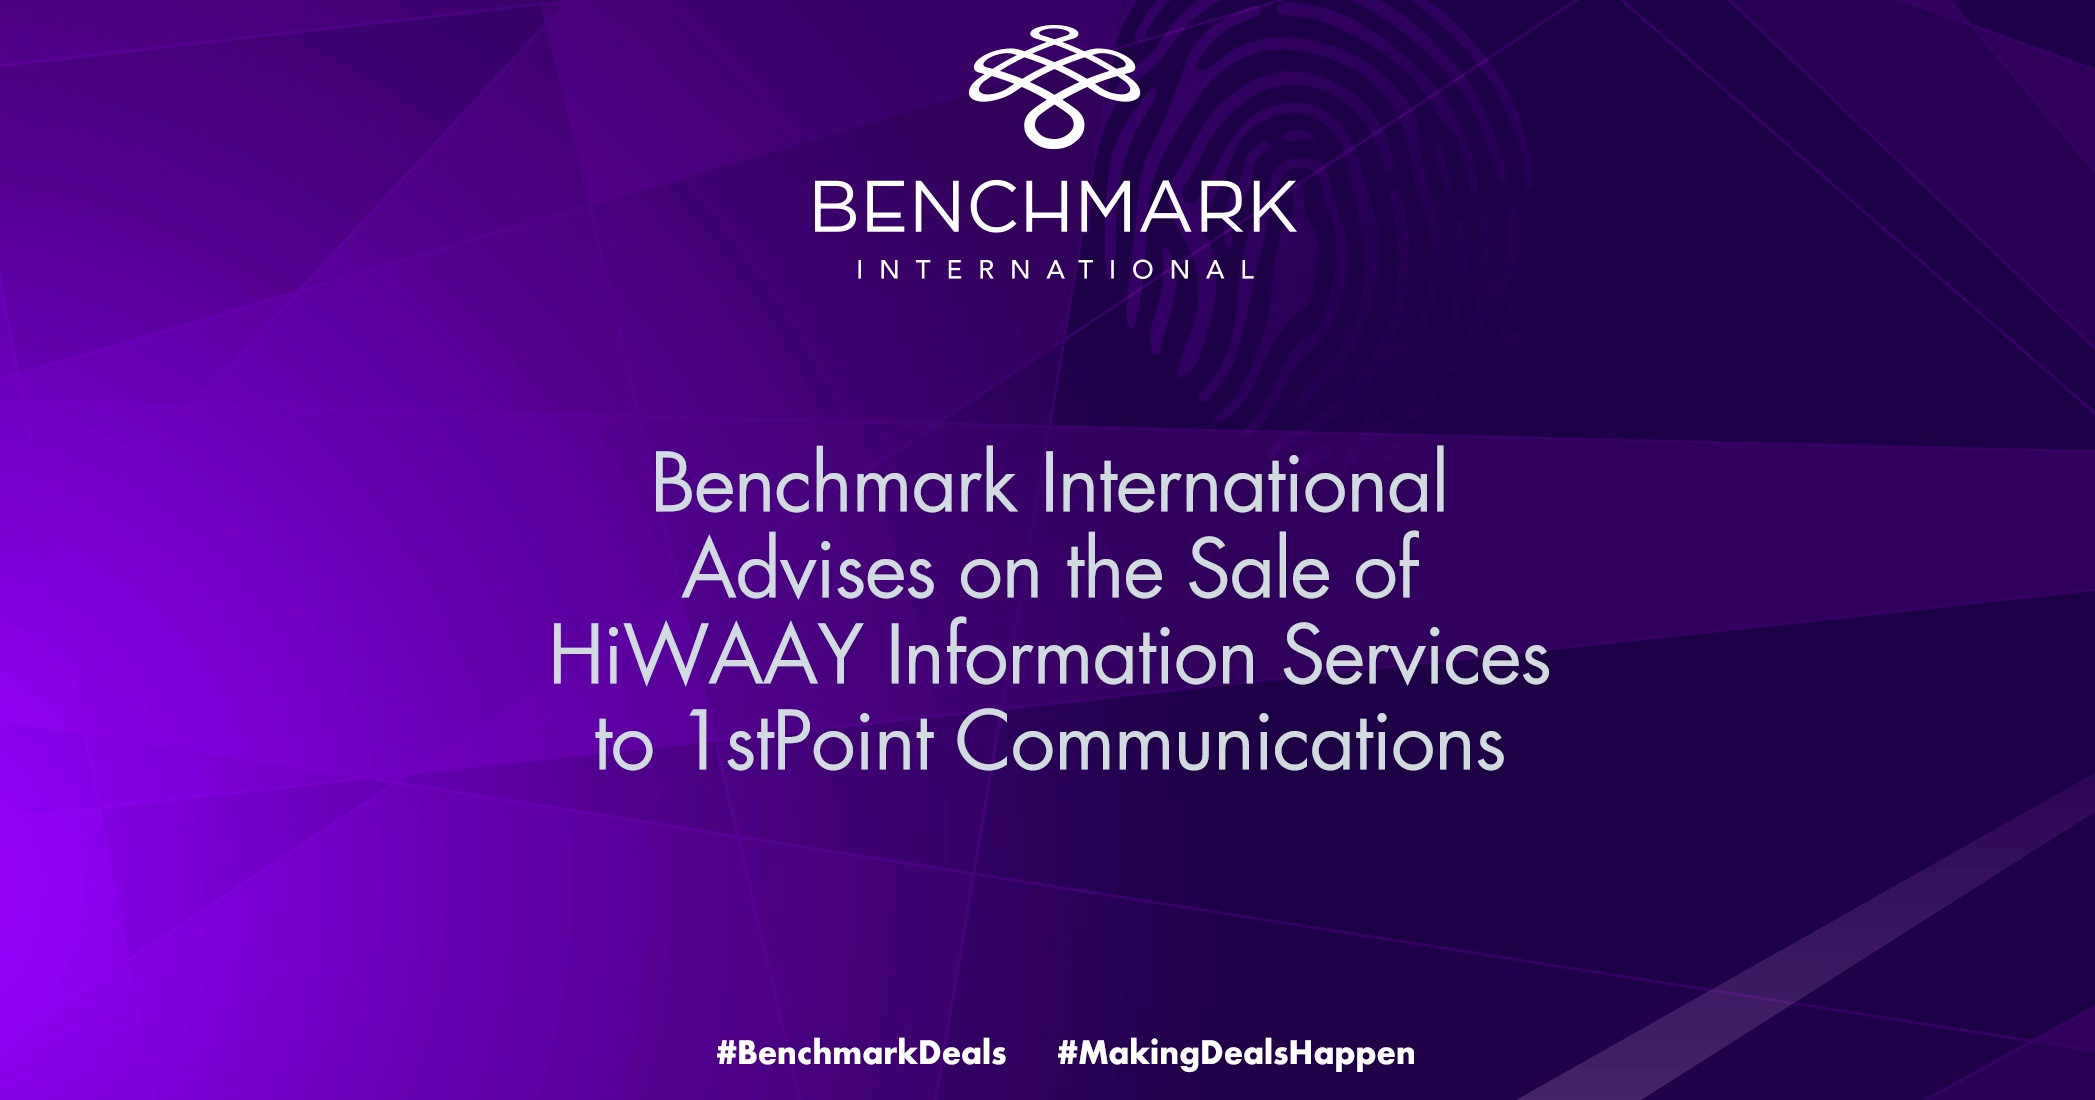 Benchmark International Facilitates the Sale of HiWAAY Information Services to 1stPoint Communications